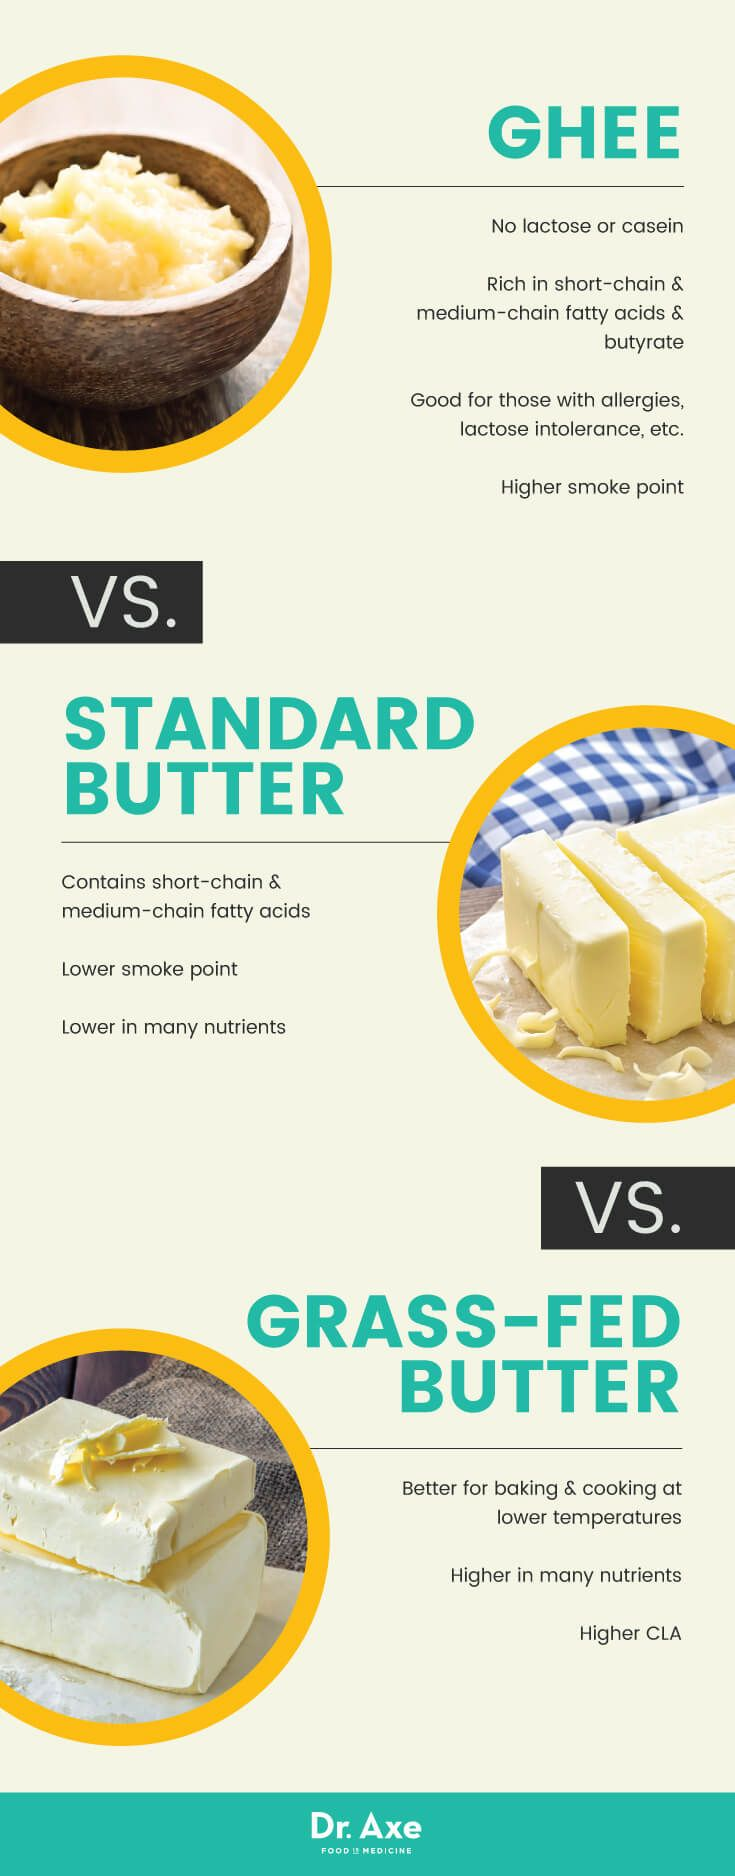 7 Health Benefits of Grass-Fed Butter Nutrition - Dr. Axe